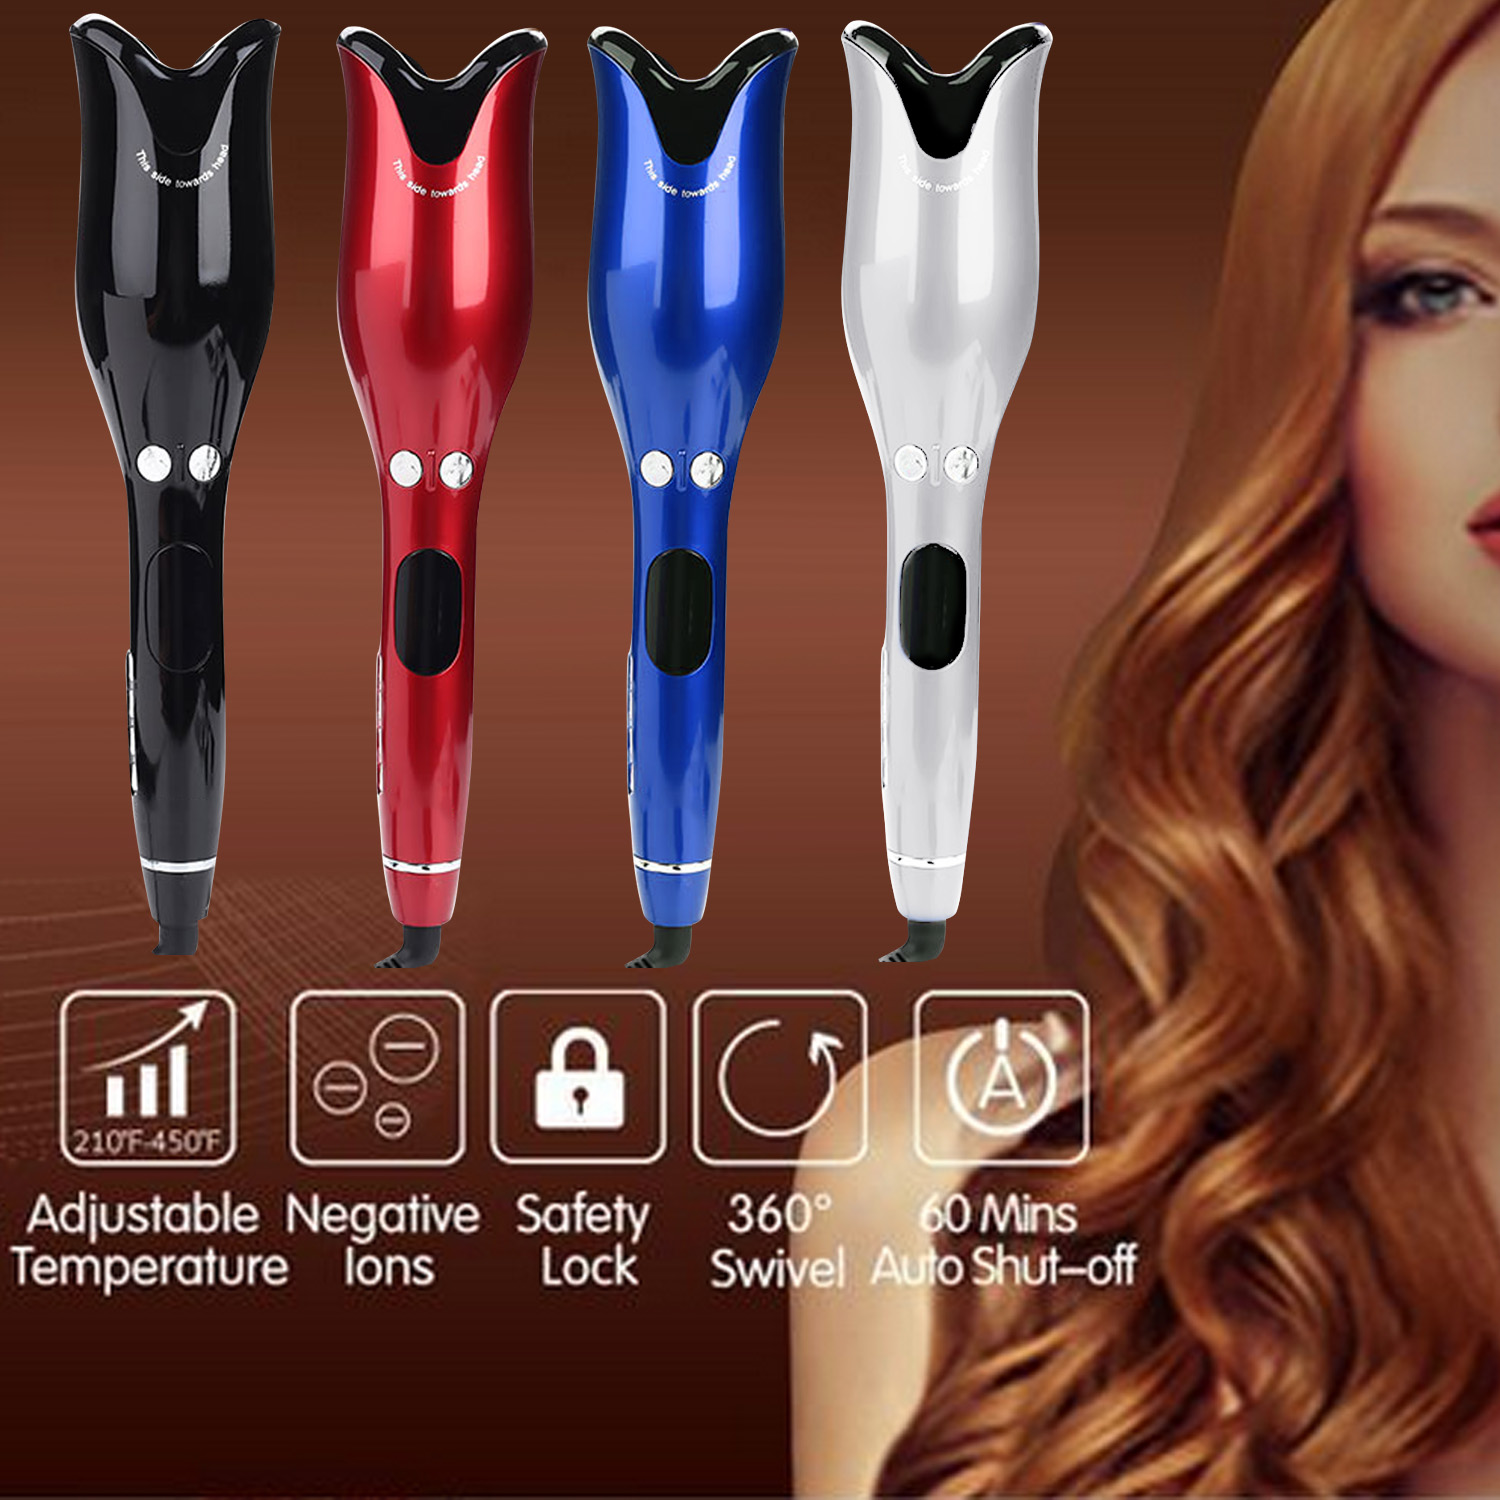 4-Gear Adjustable Temperature Rose-shaped Ceramic Automatic Hair Curling Curler Wand Waver Roller Styling Tools for Women Girls image